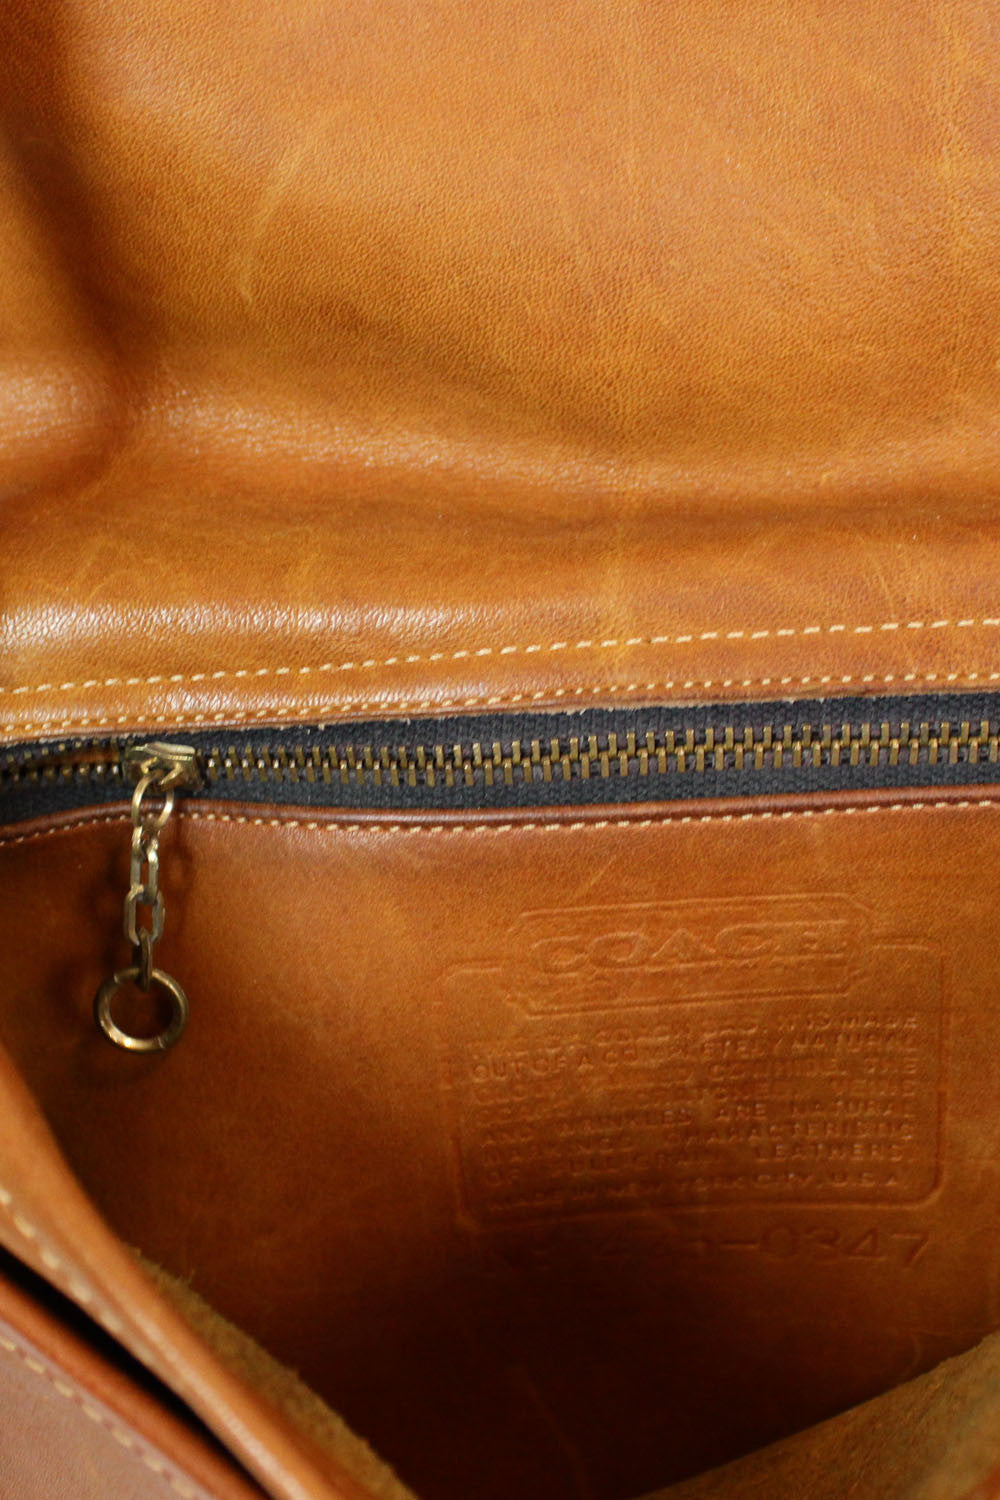 Coach 1970s distressed chestnut satchel bag